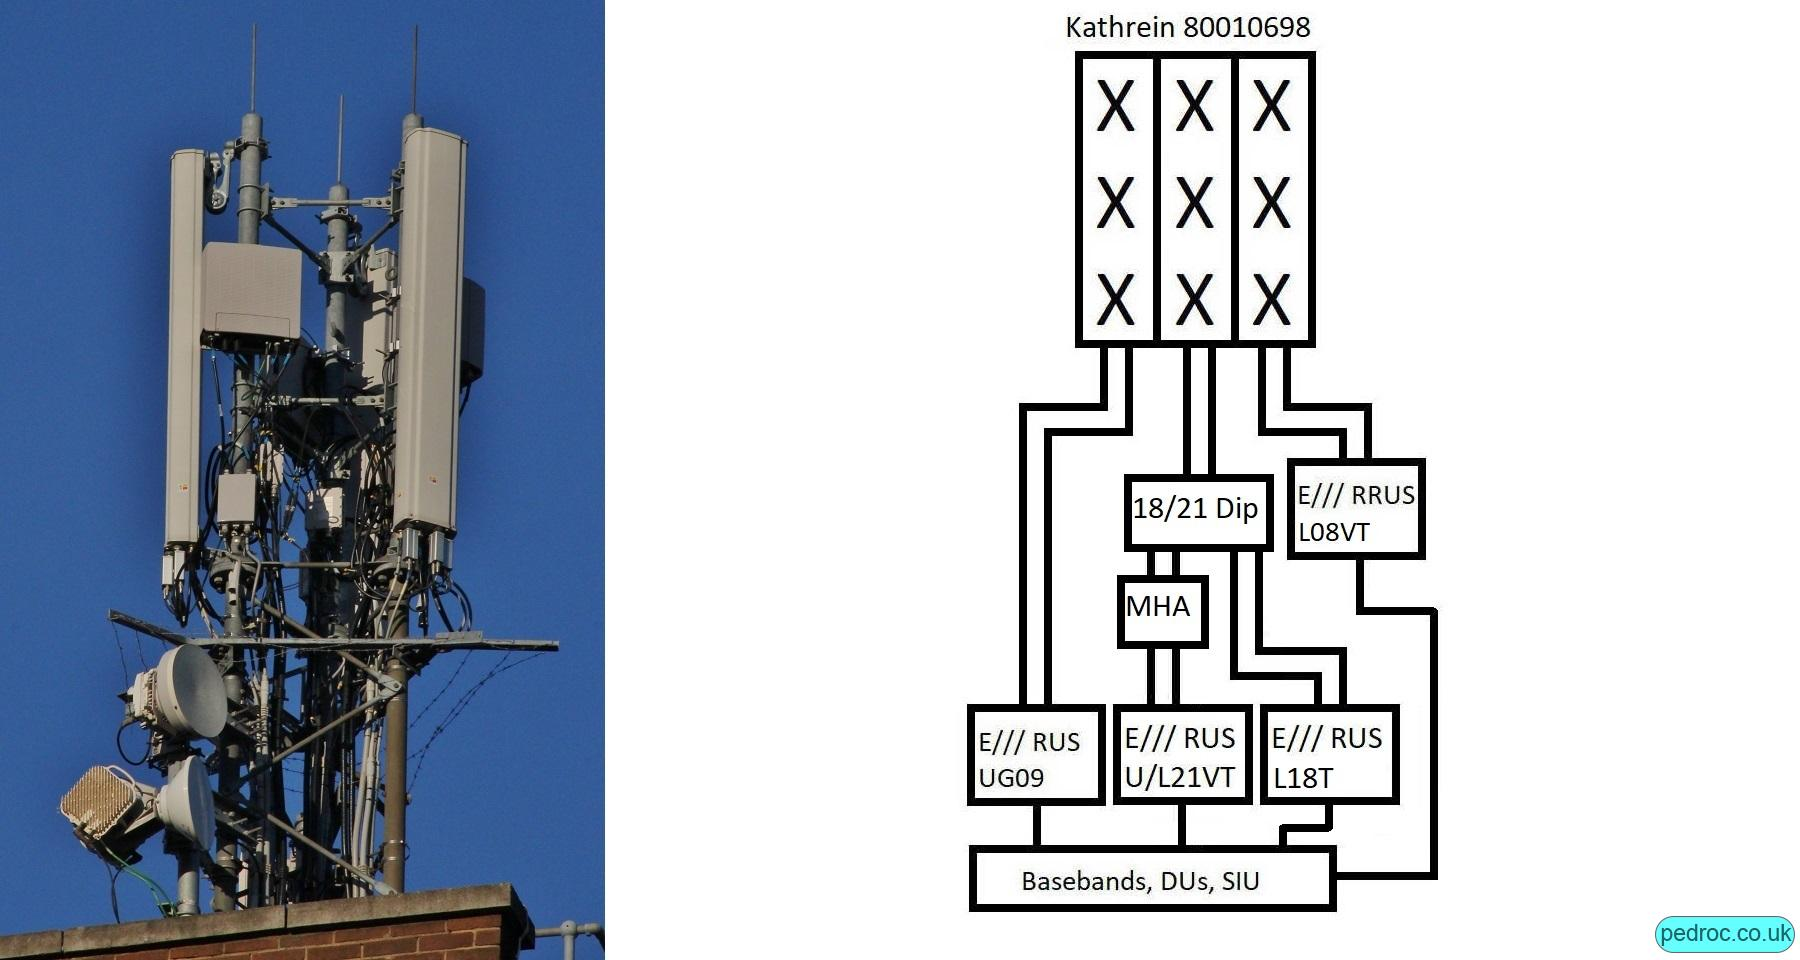 High Capacity Configuration using triple band Kathrein 80010698 antennas and a diplexor on the high band ports to add 1800MHz. Once again, RRUS11 visible for L800 and MHA for 2100MHz.